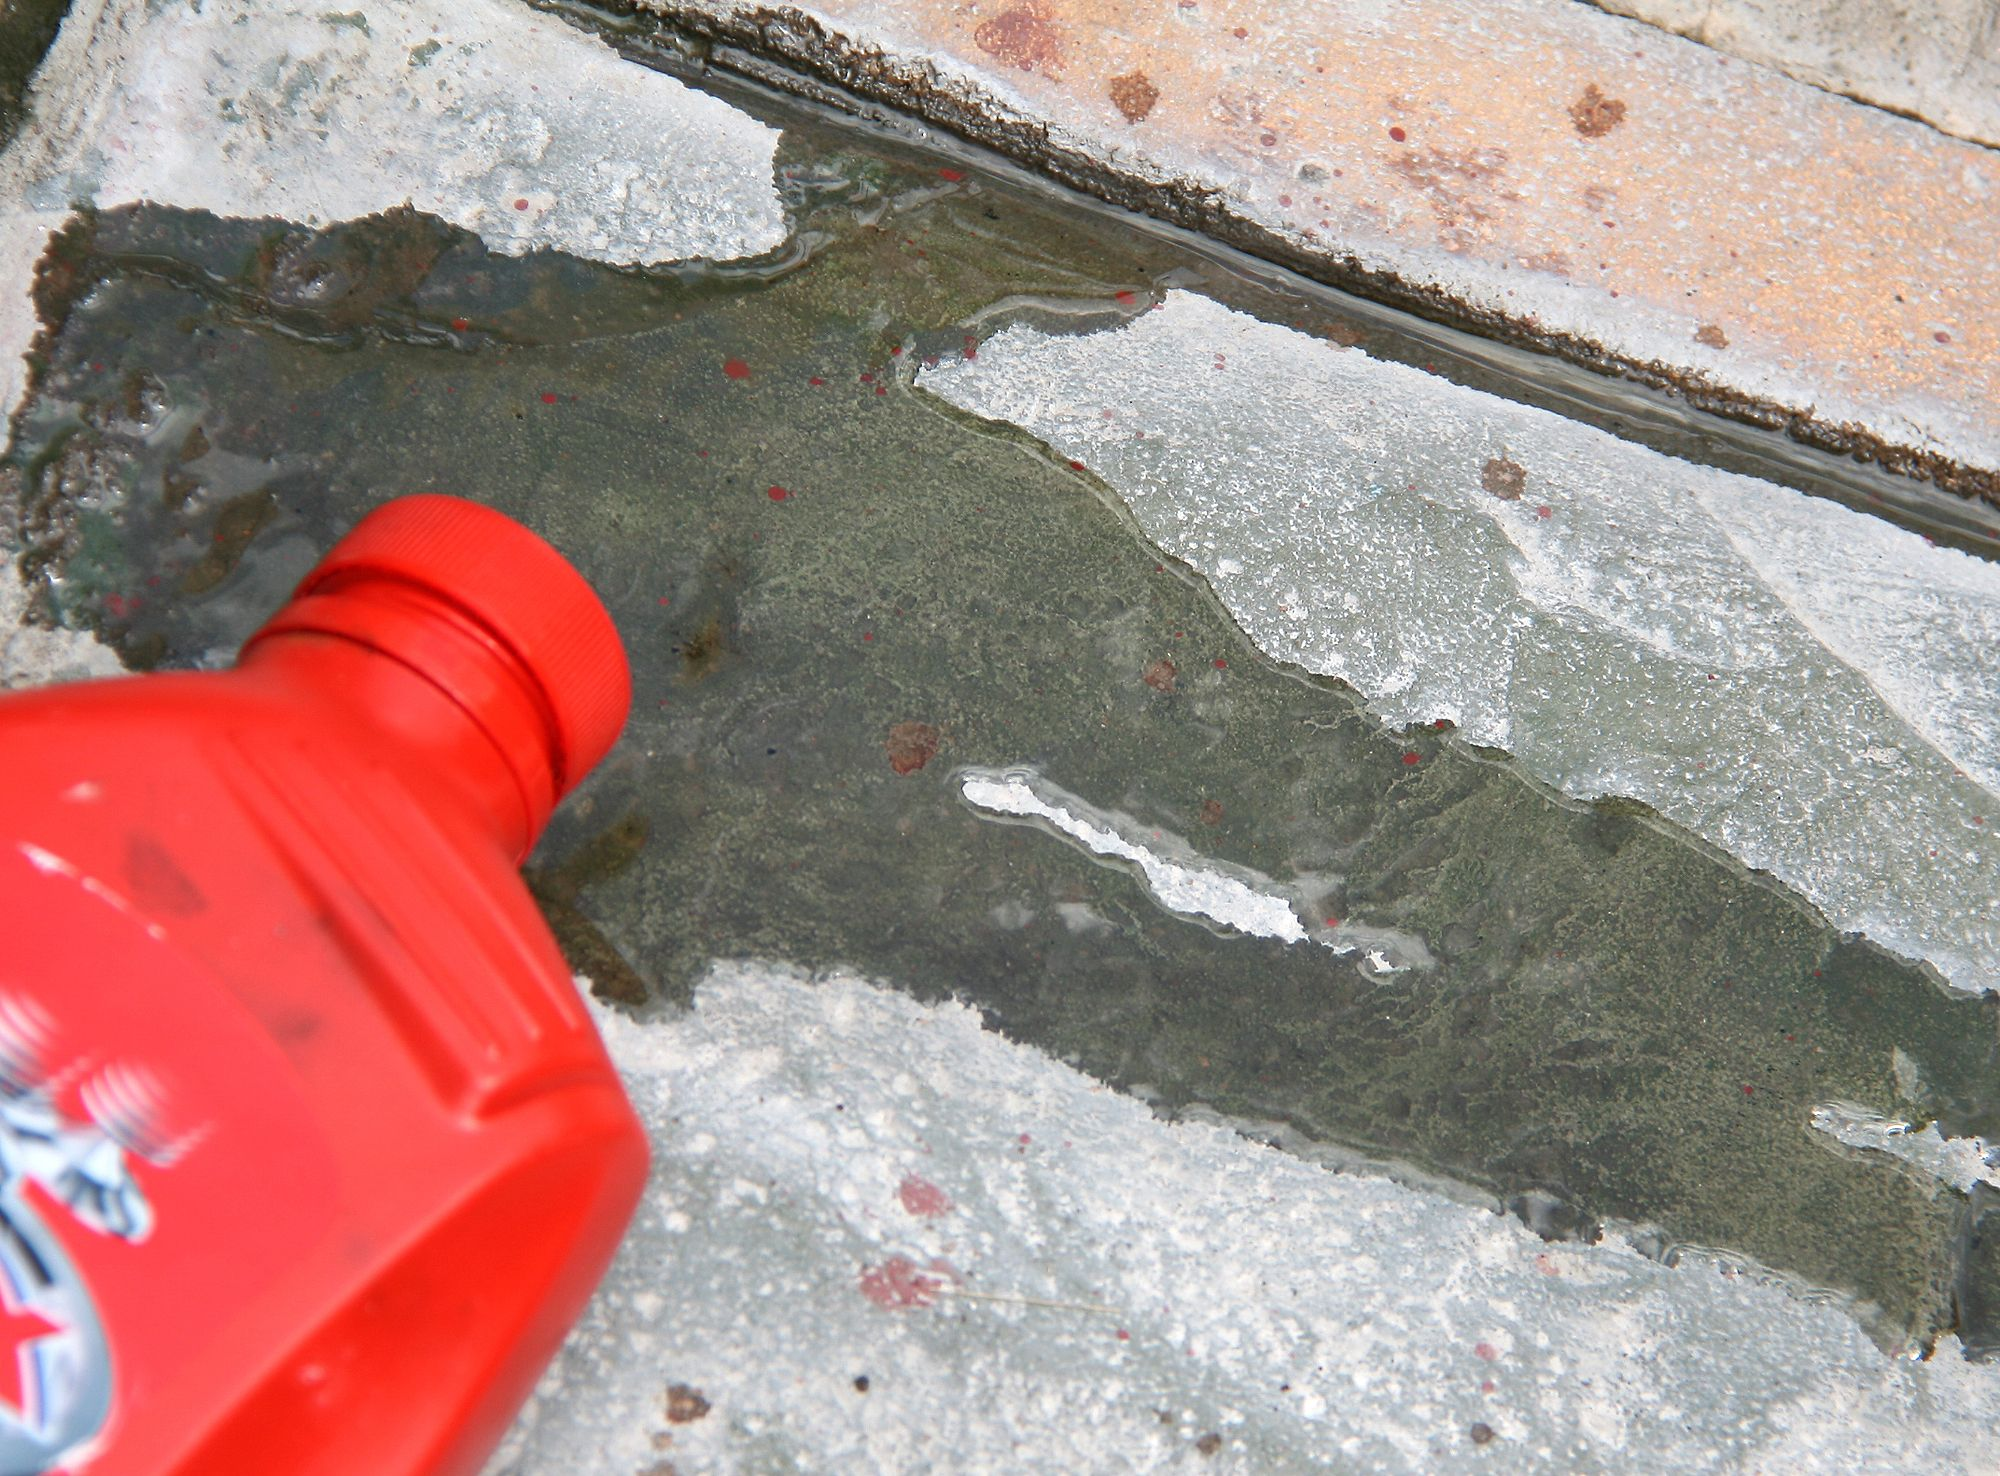 How To Remove Motor Oil From Concrete Driveway Remove Oil Stains Concrete Cleaner Oil Stains